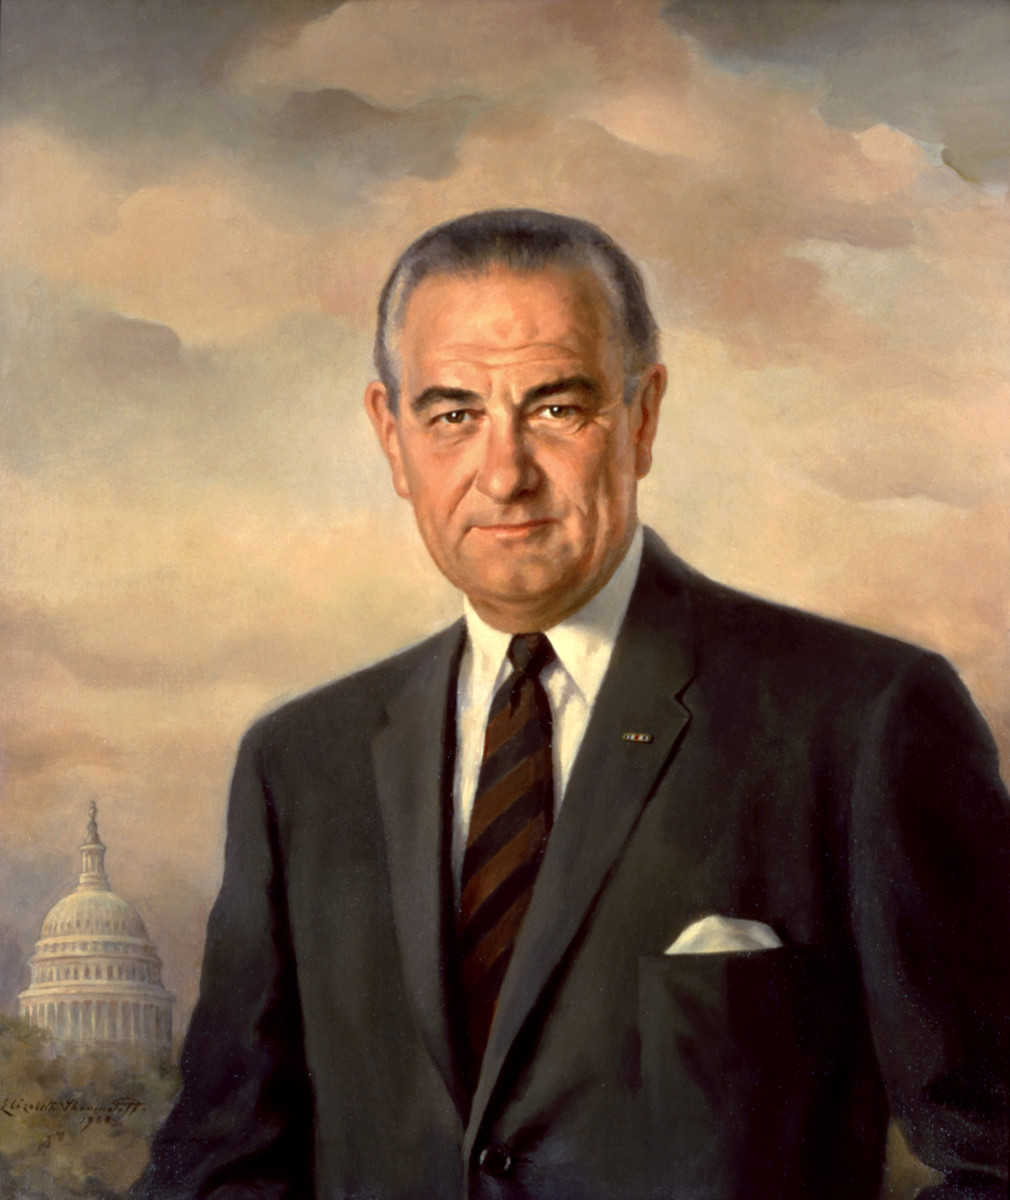 lyndon-b-johnson-36th-president